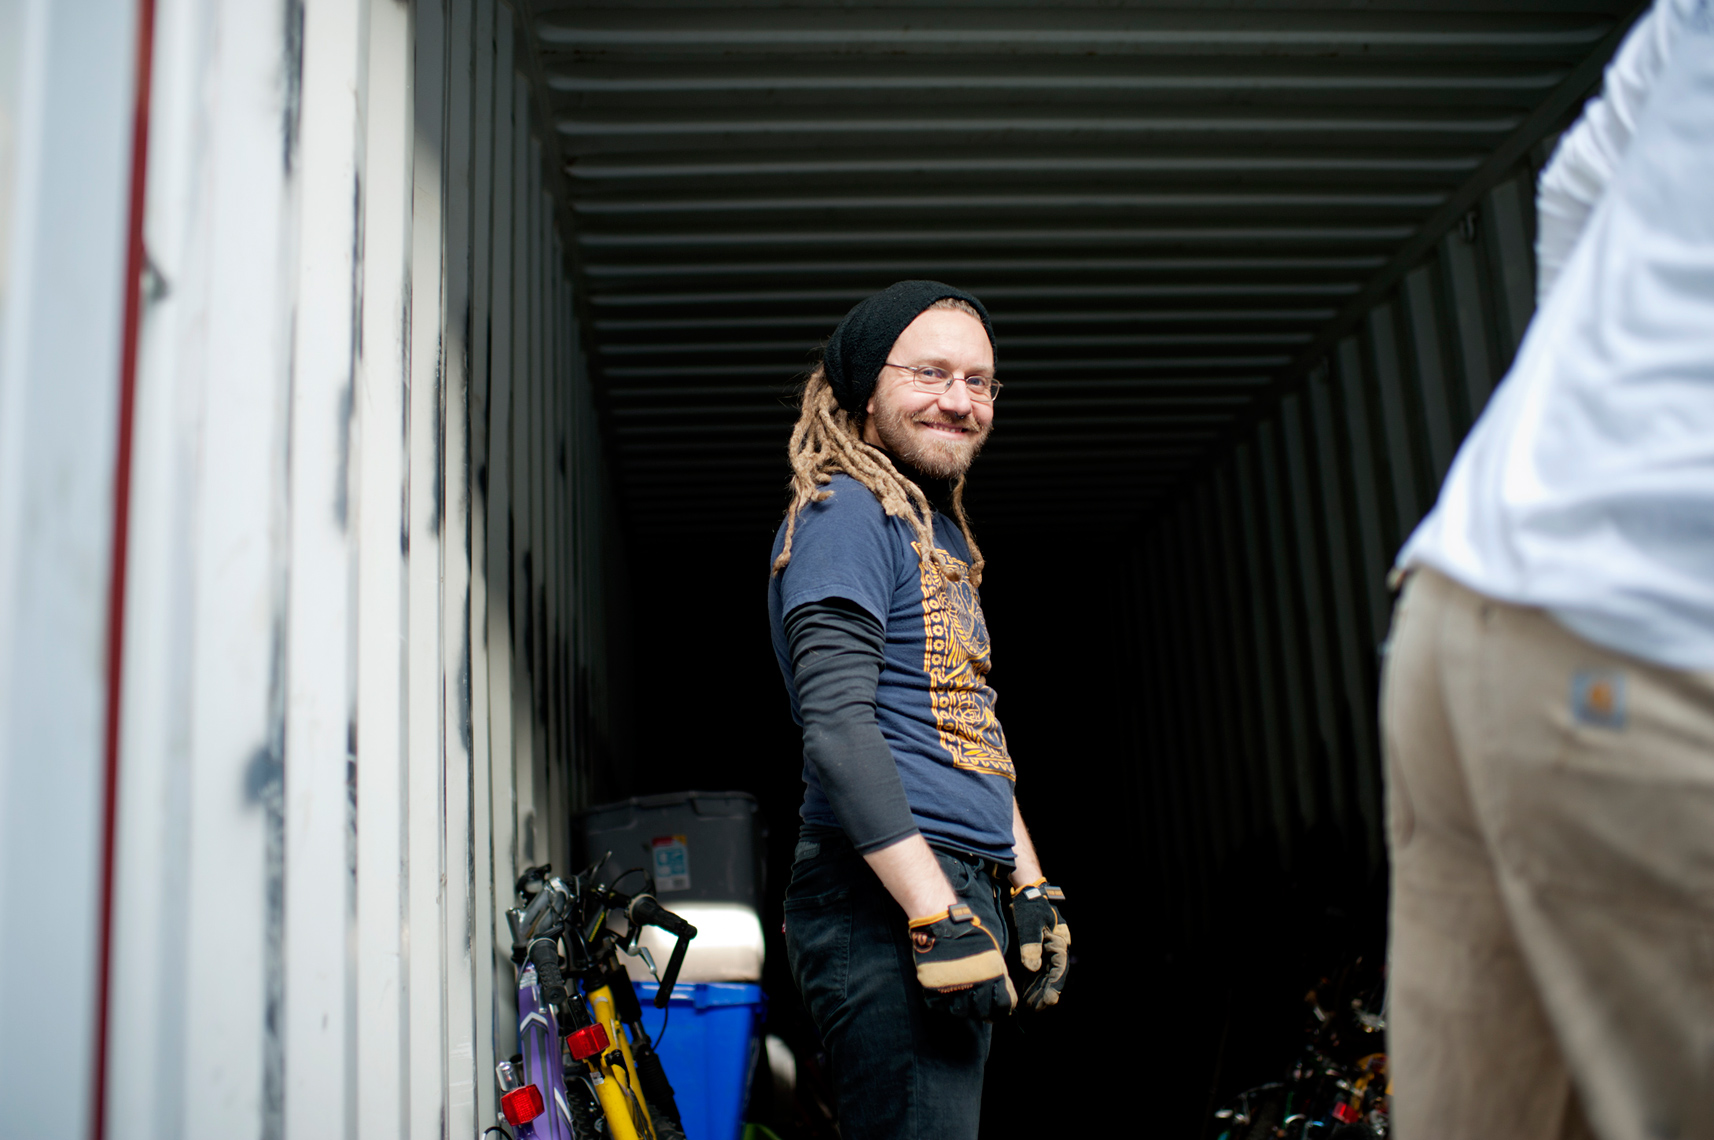 Bikes Not Bombs volunteer packing reclaimed bikes into shipping container to ship to Nicaragua